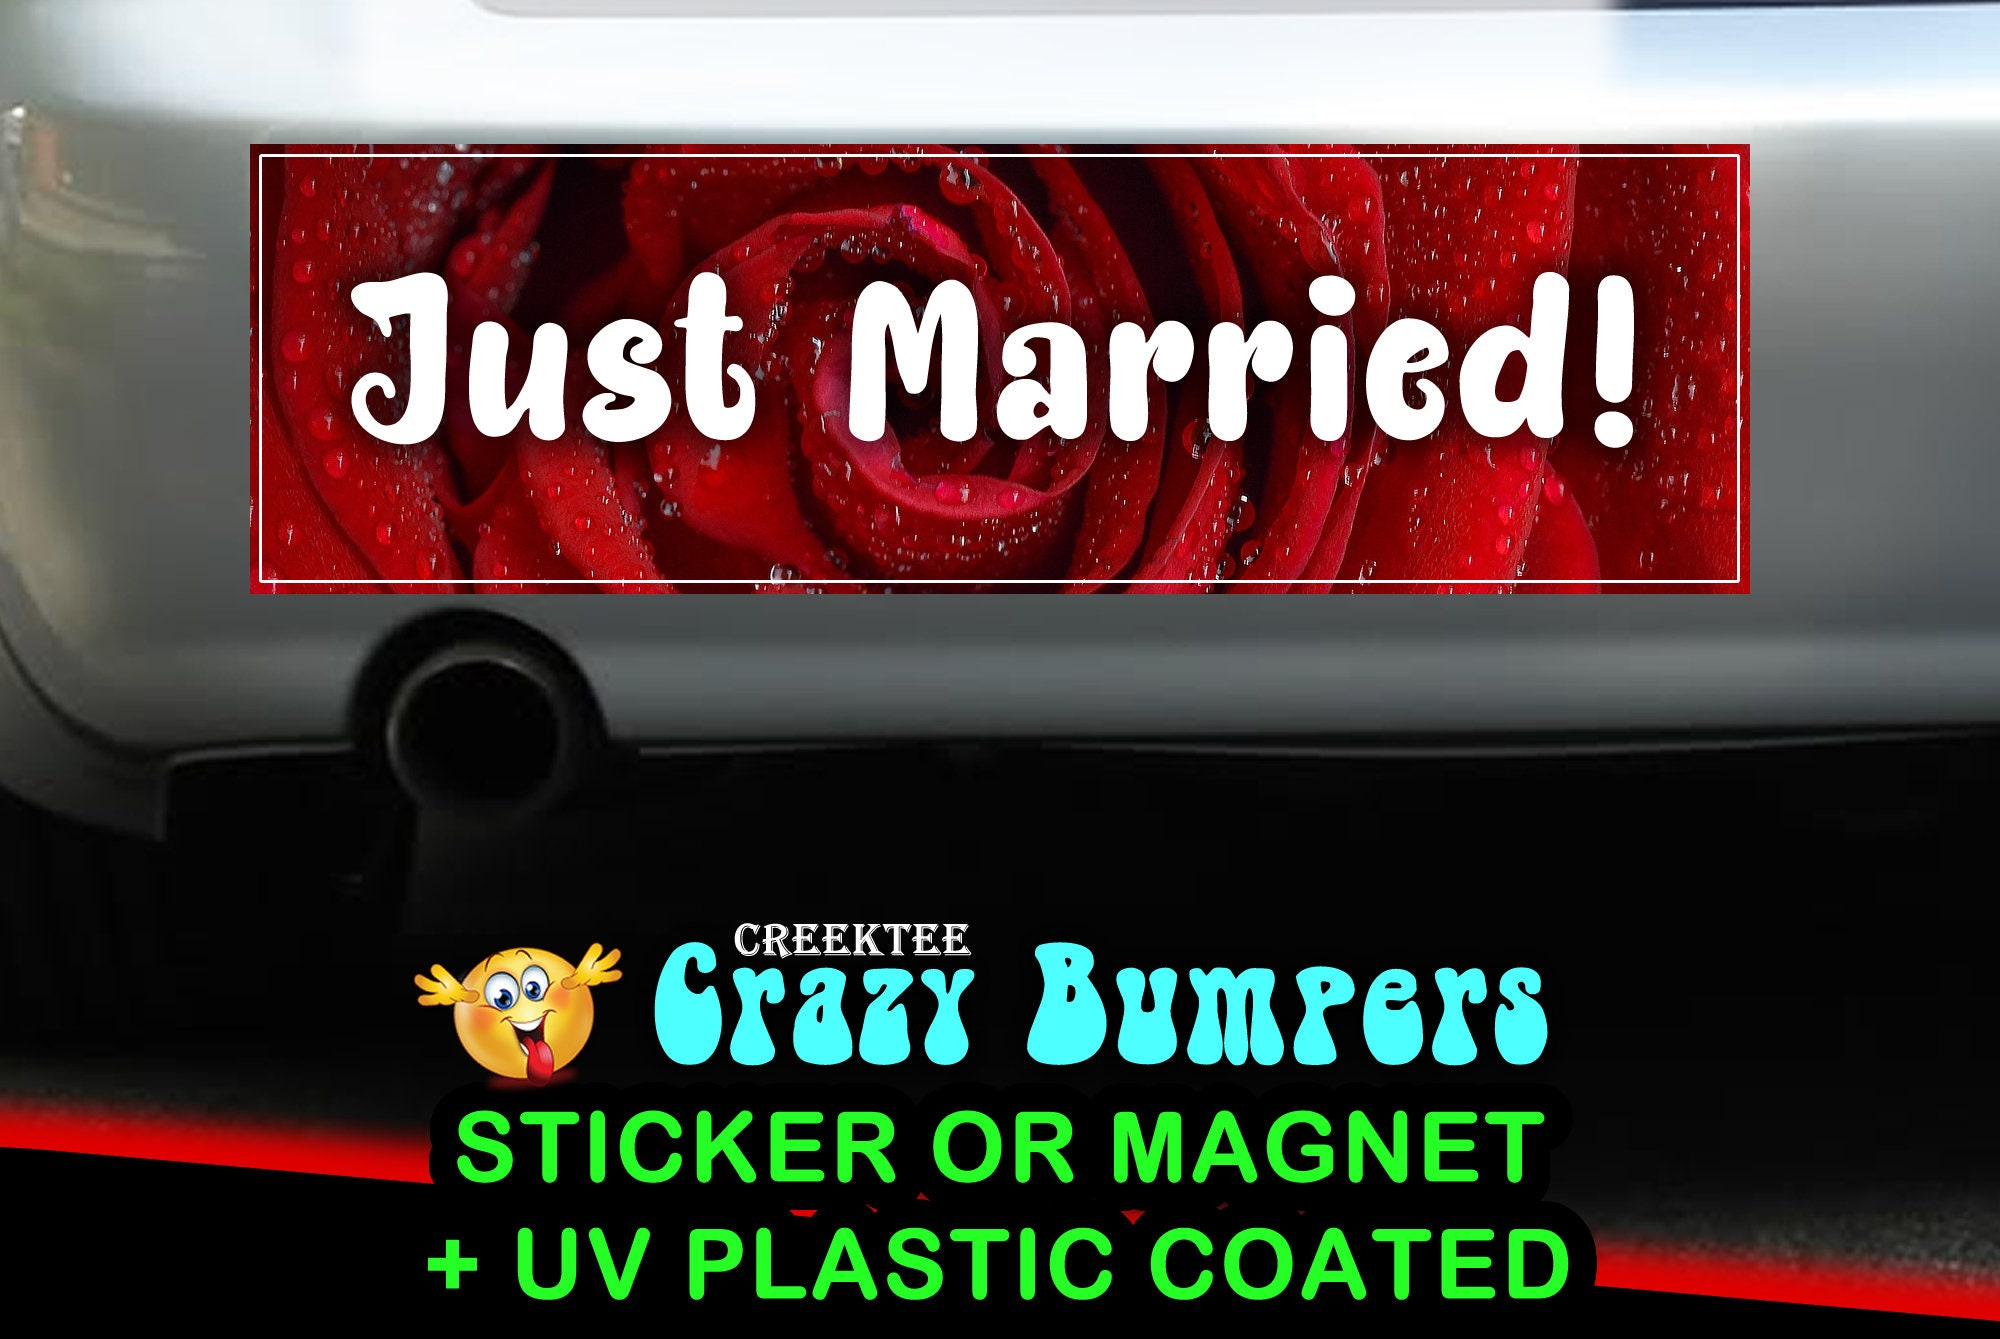 CAD$9.74 - Just Married 10 x 3 Bumper Sticker or Magnetic Bumper Sticker Available